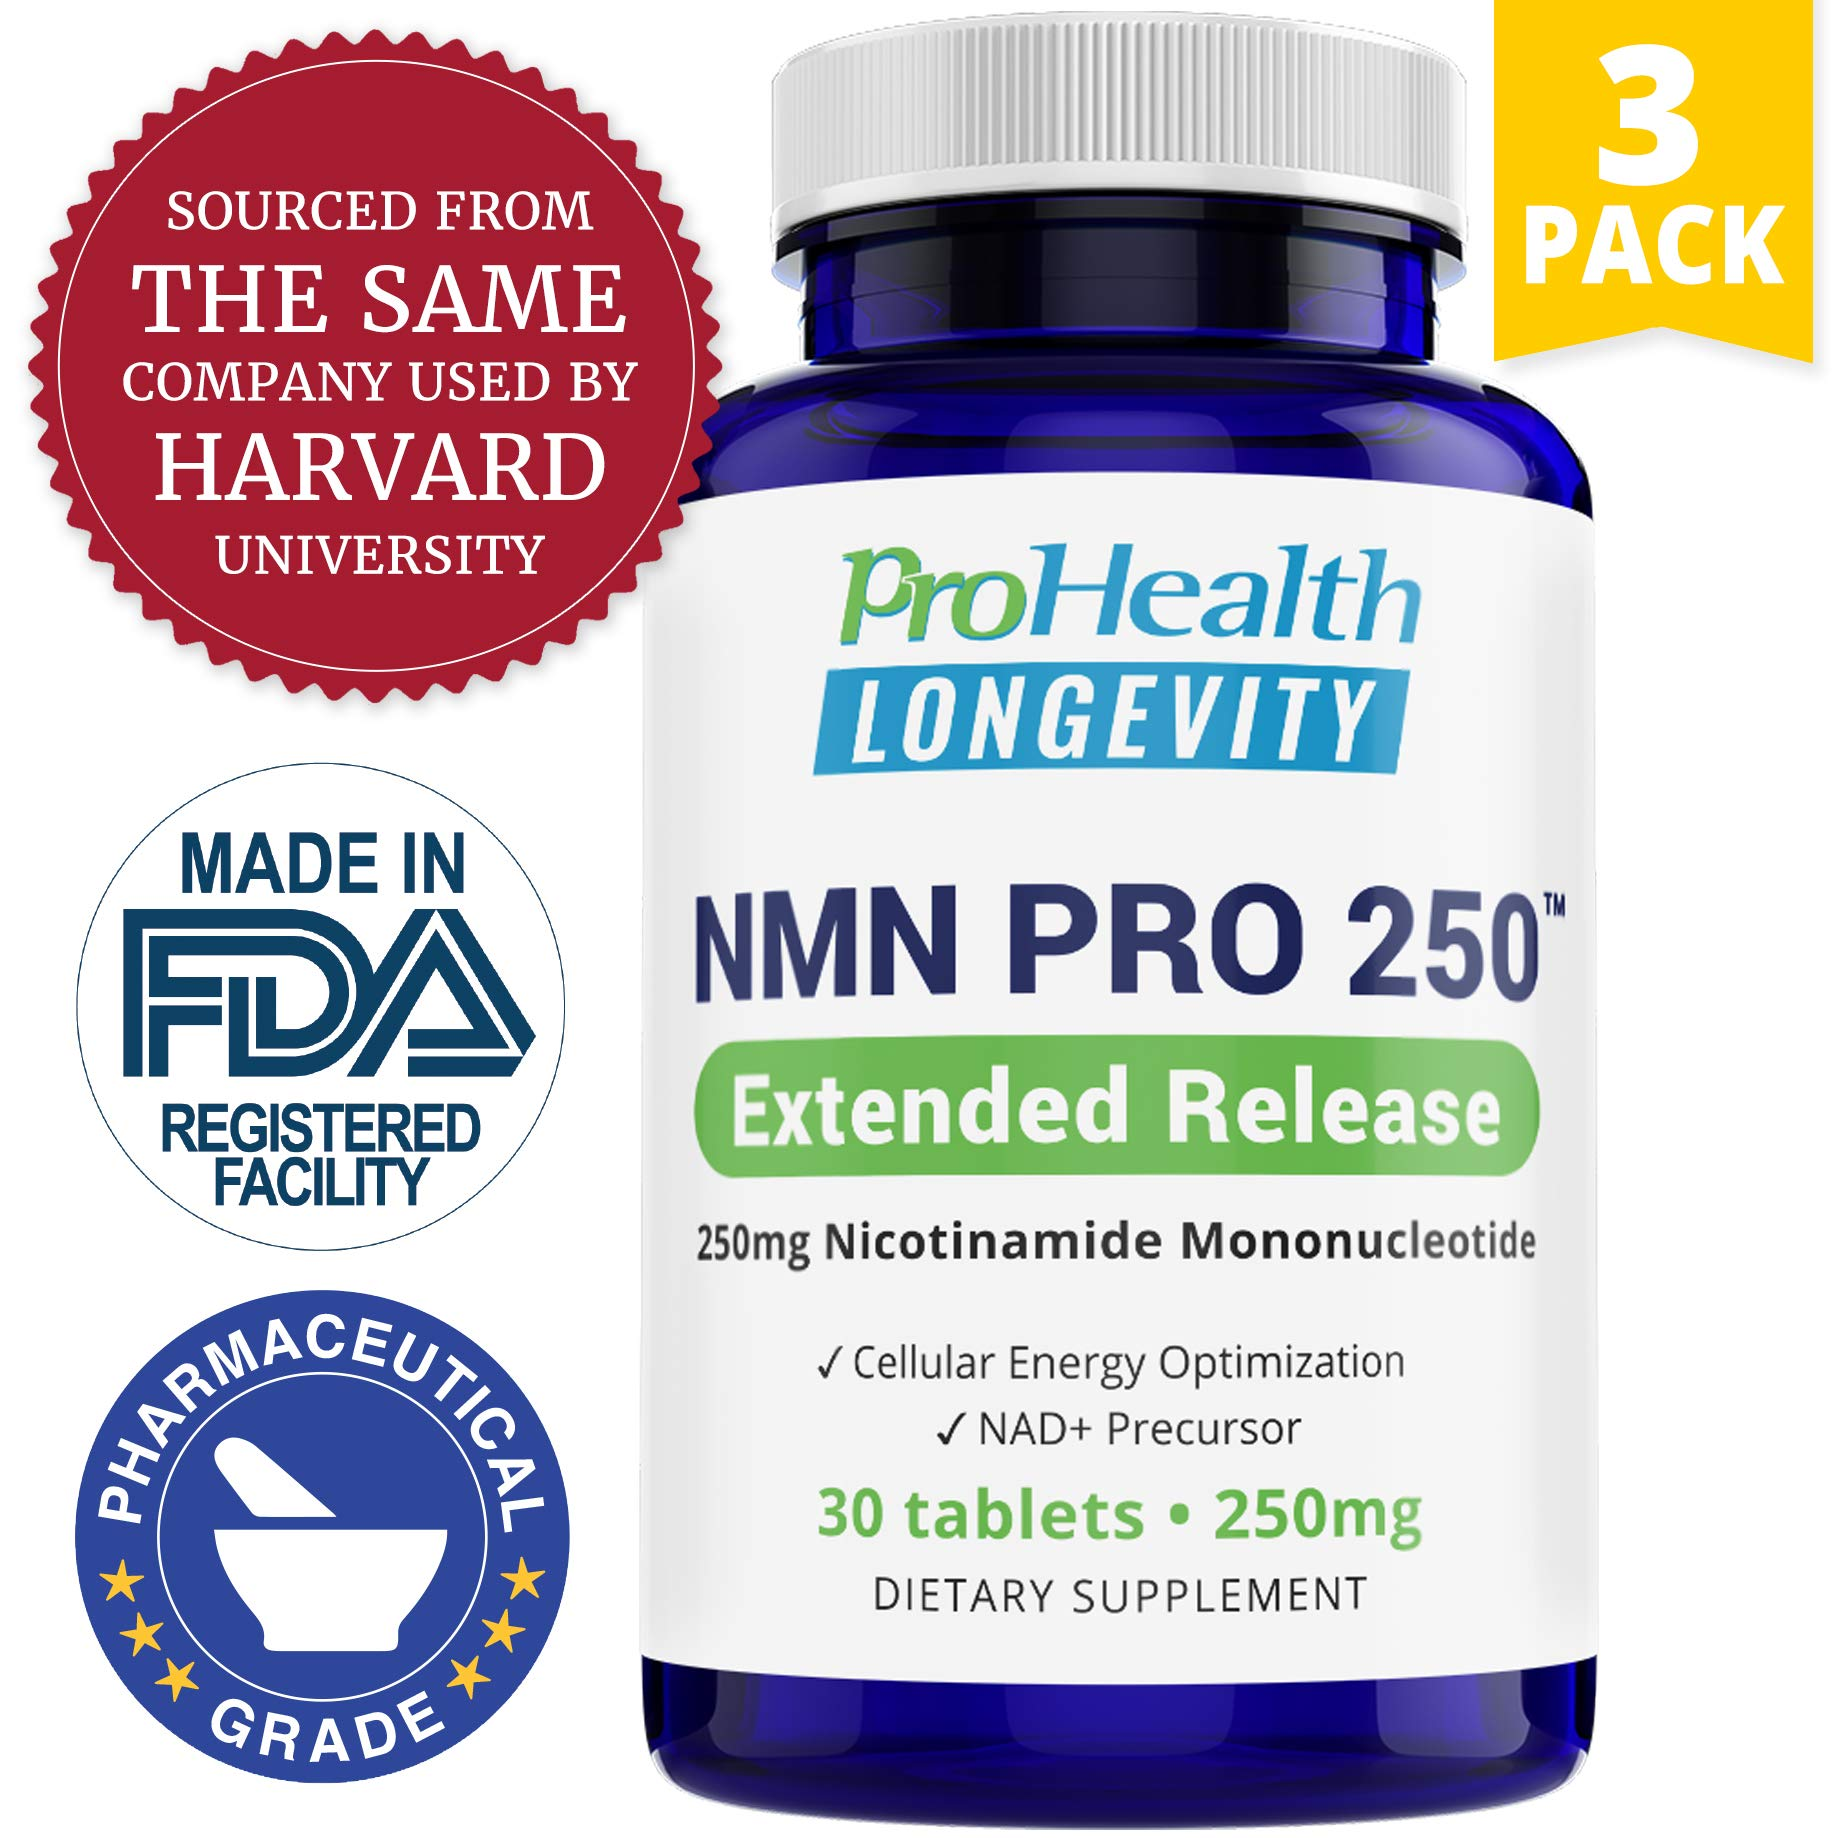 ProHealth 3-Pack NMN Pro 250 Extended Release (250 mg nicotinamide mononucleotide, 30 Tablets per Bottle) NAD+ Precursor | Supports Anti-Aging, Longevity and Energy | Non-GMO ... by ProHealth